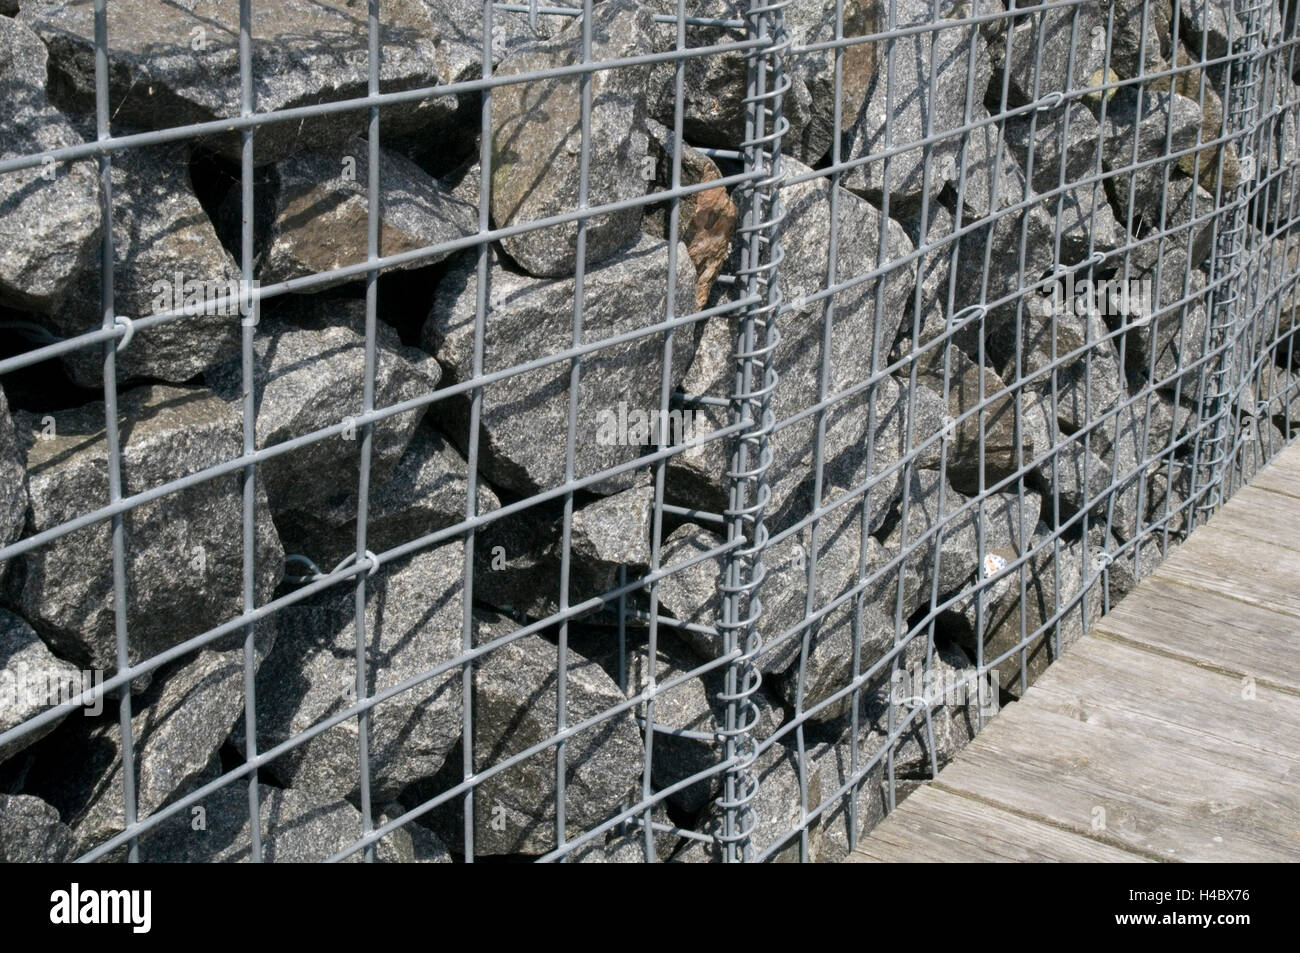 gabion gabions cage cages full of rock rocks stone stones building stock photo royalty free. Black Bedroom Furniture Sets. Home Design Ideas